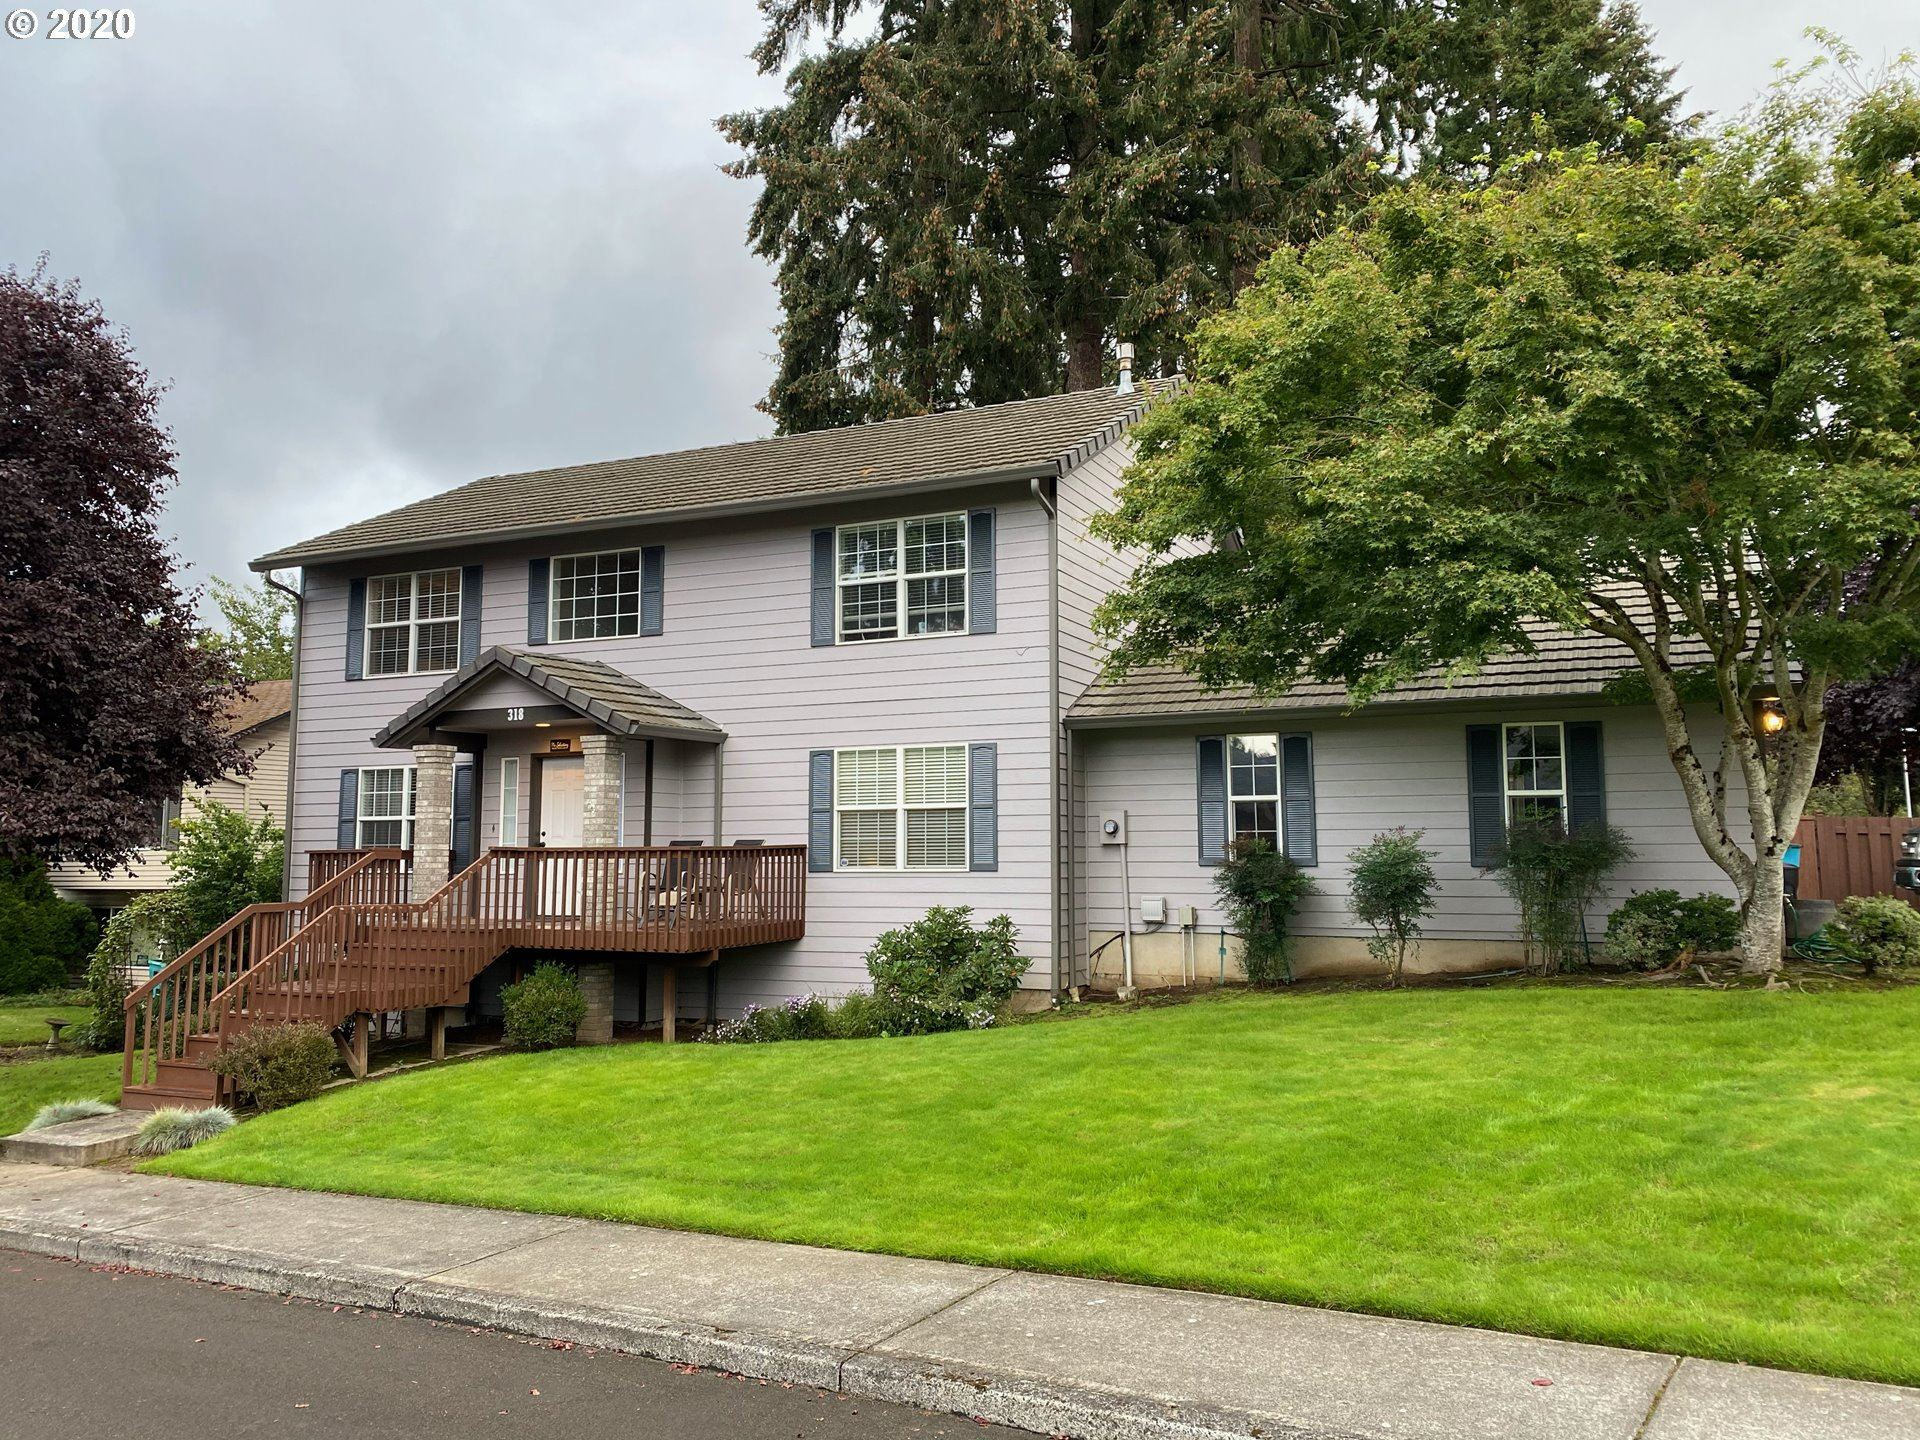 318 NW 108TH ST, Vancouver, WA 98685 - MLS#: 20194140